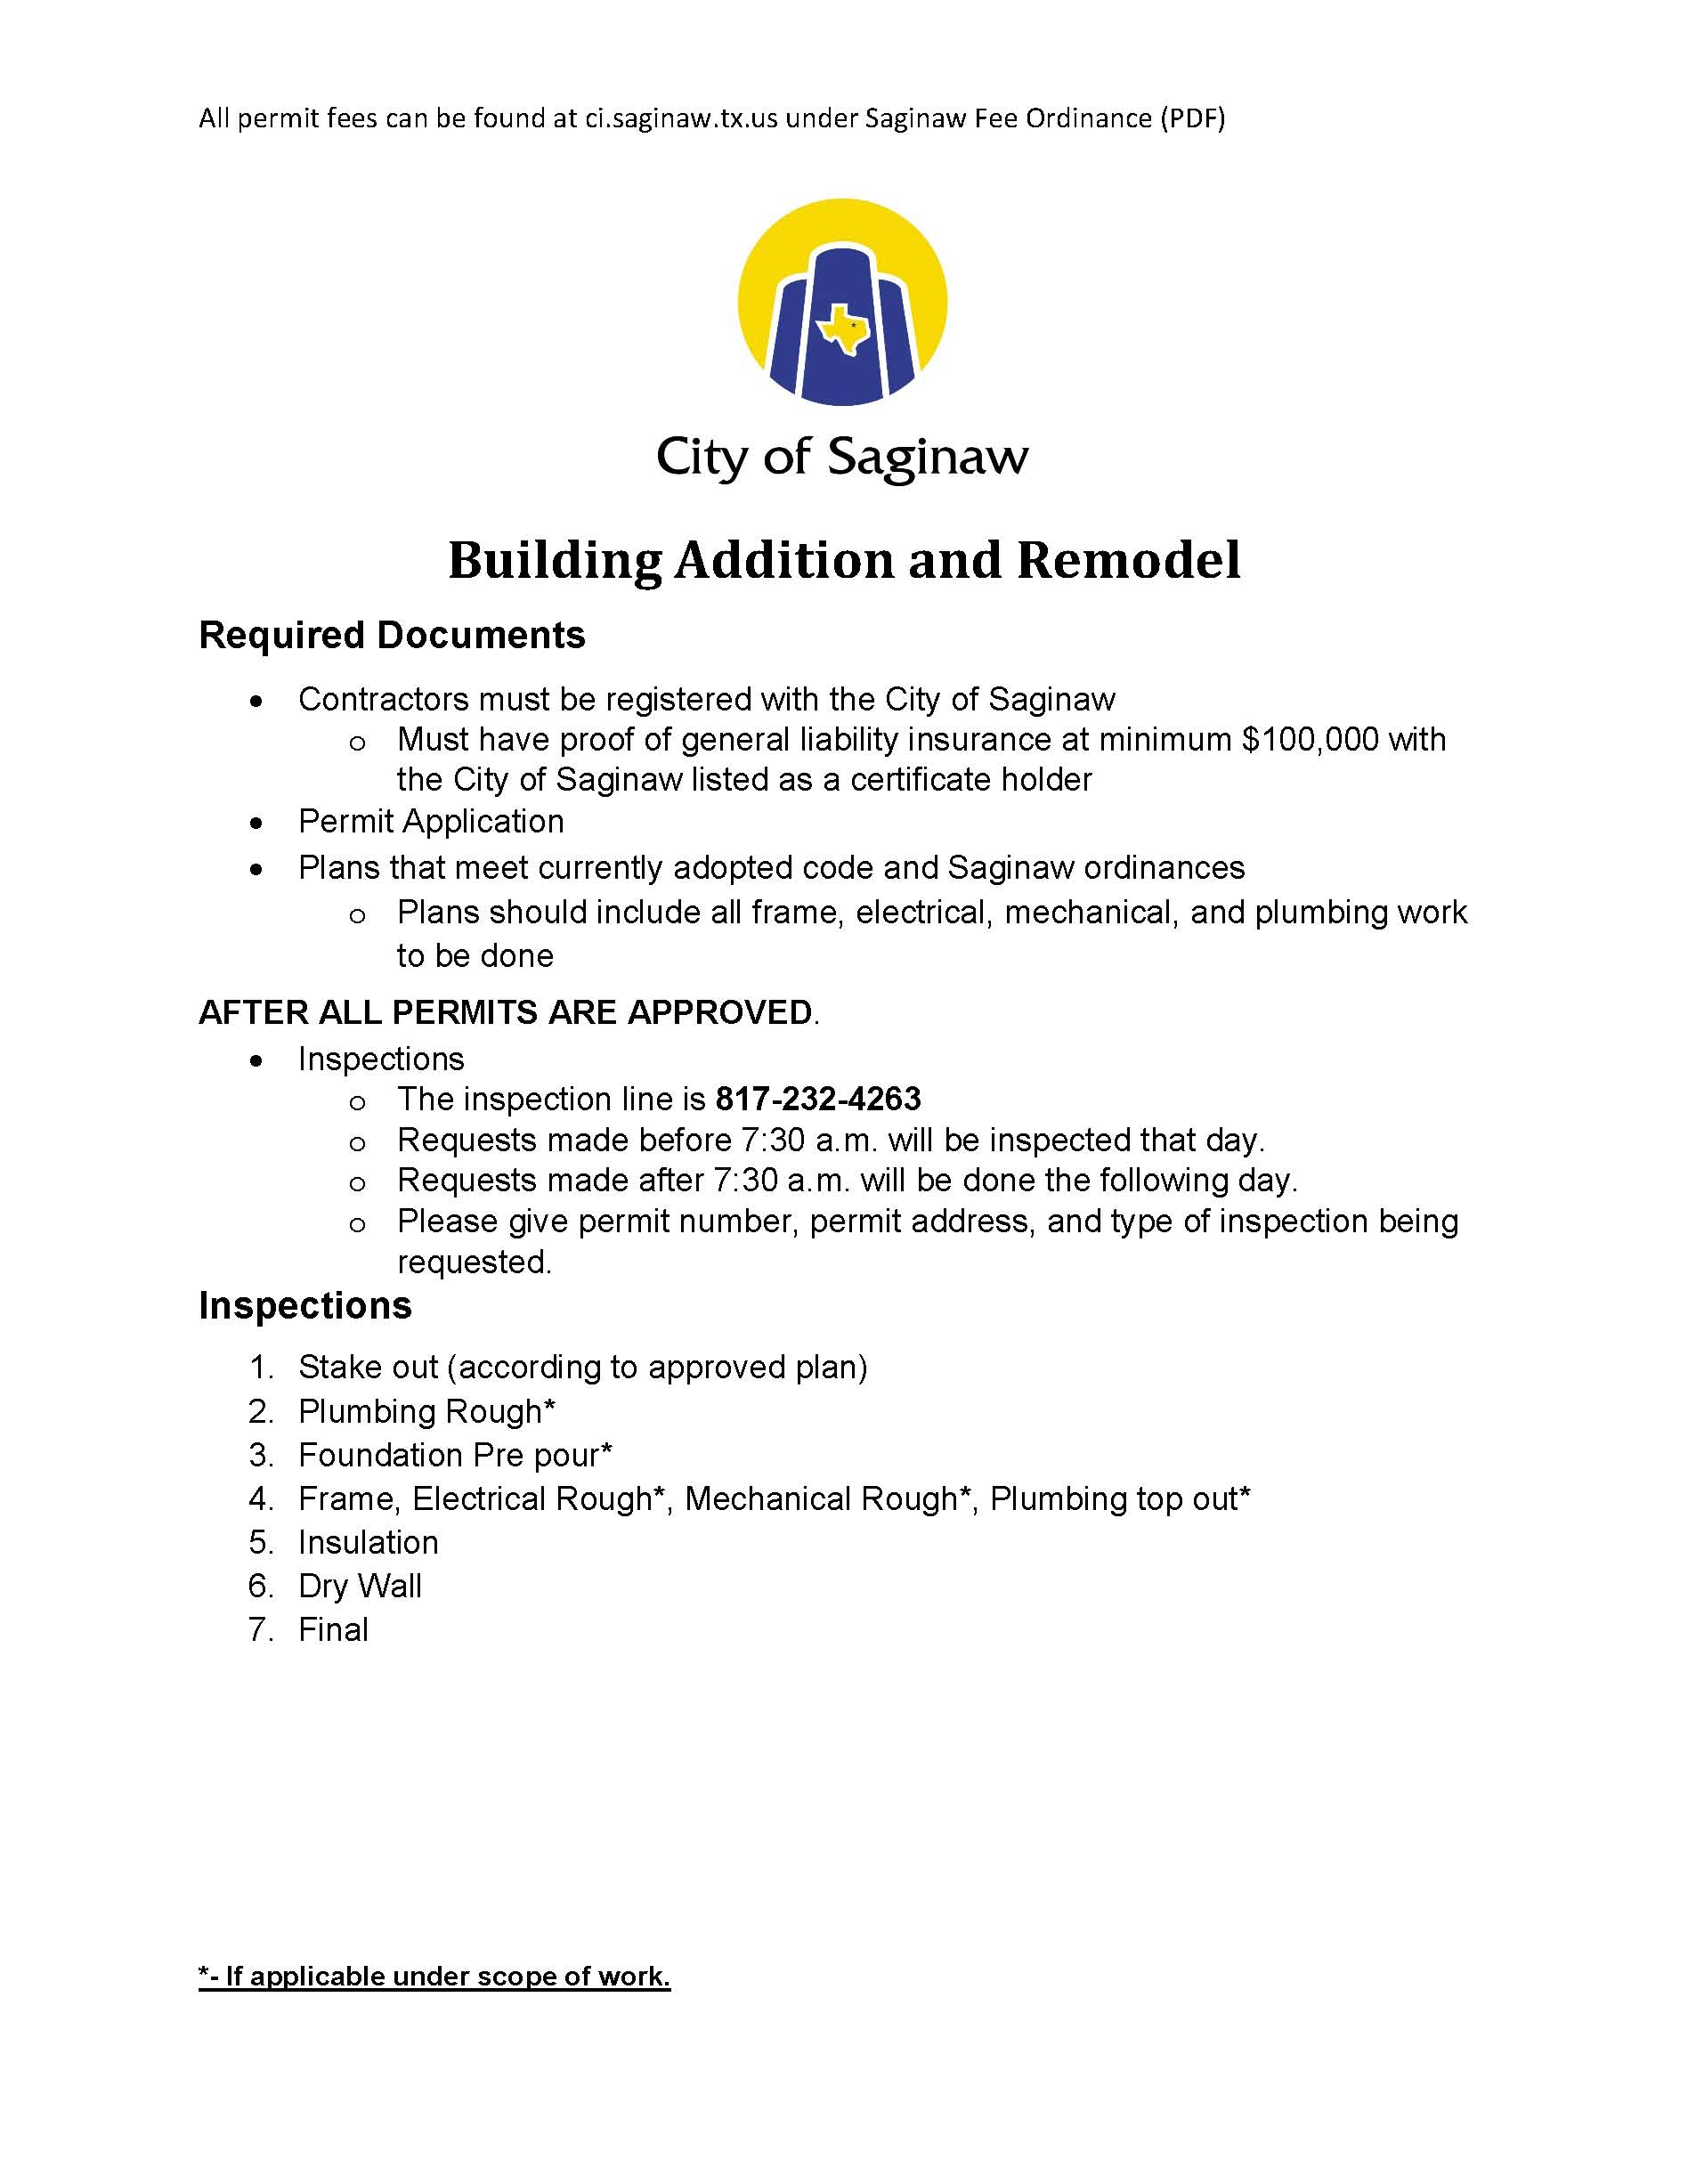 Commercial Building Addition and Remodel with handout_Page_1